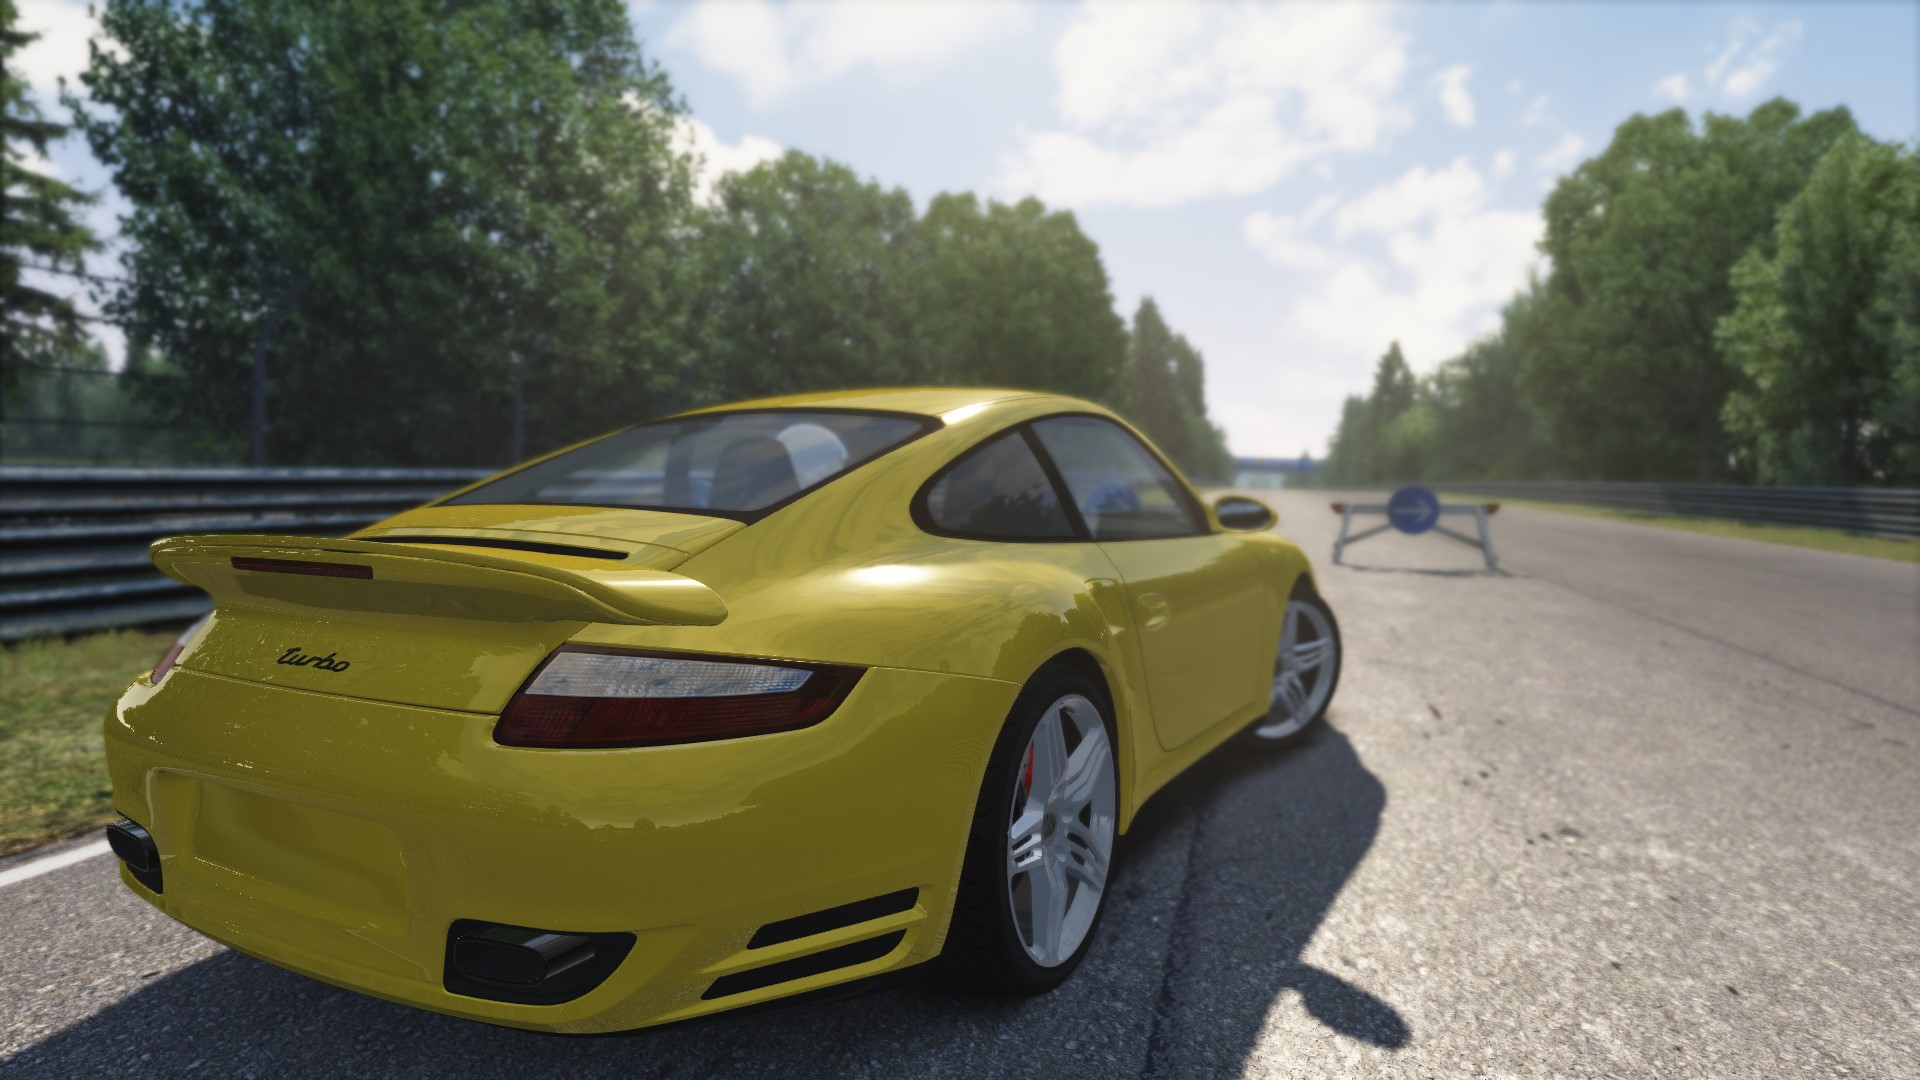 Screenshot_porsche_997turbo_ks_nordschleife_17-8-115-15-20-17.jpg